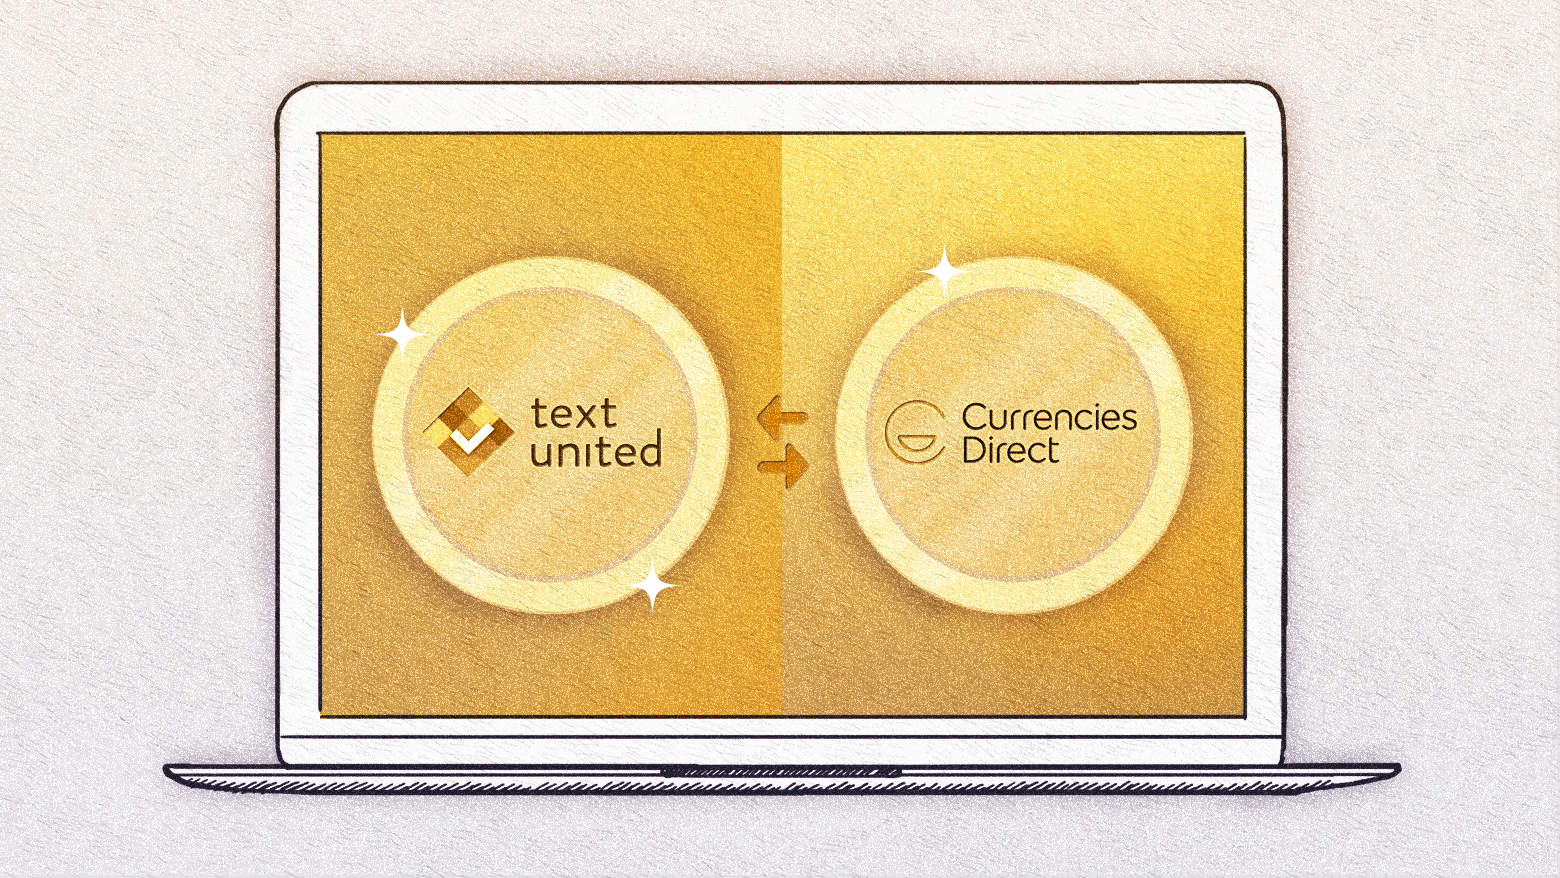 The Successful Implementation of Text United at Currencies Direct